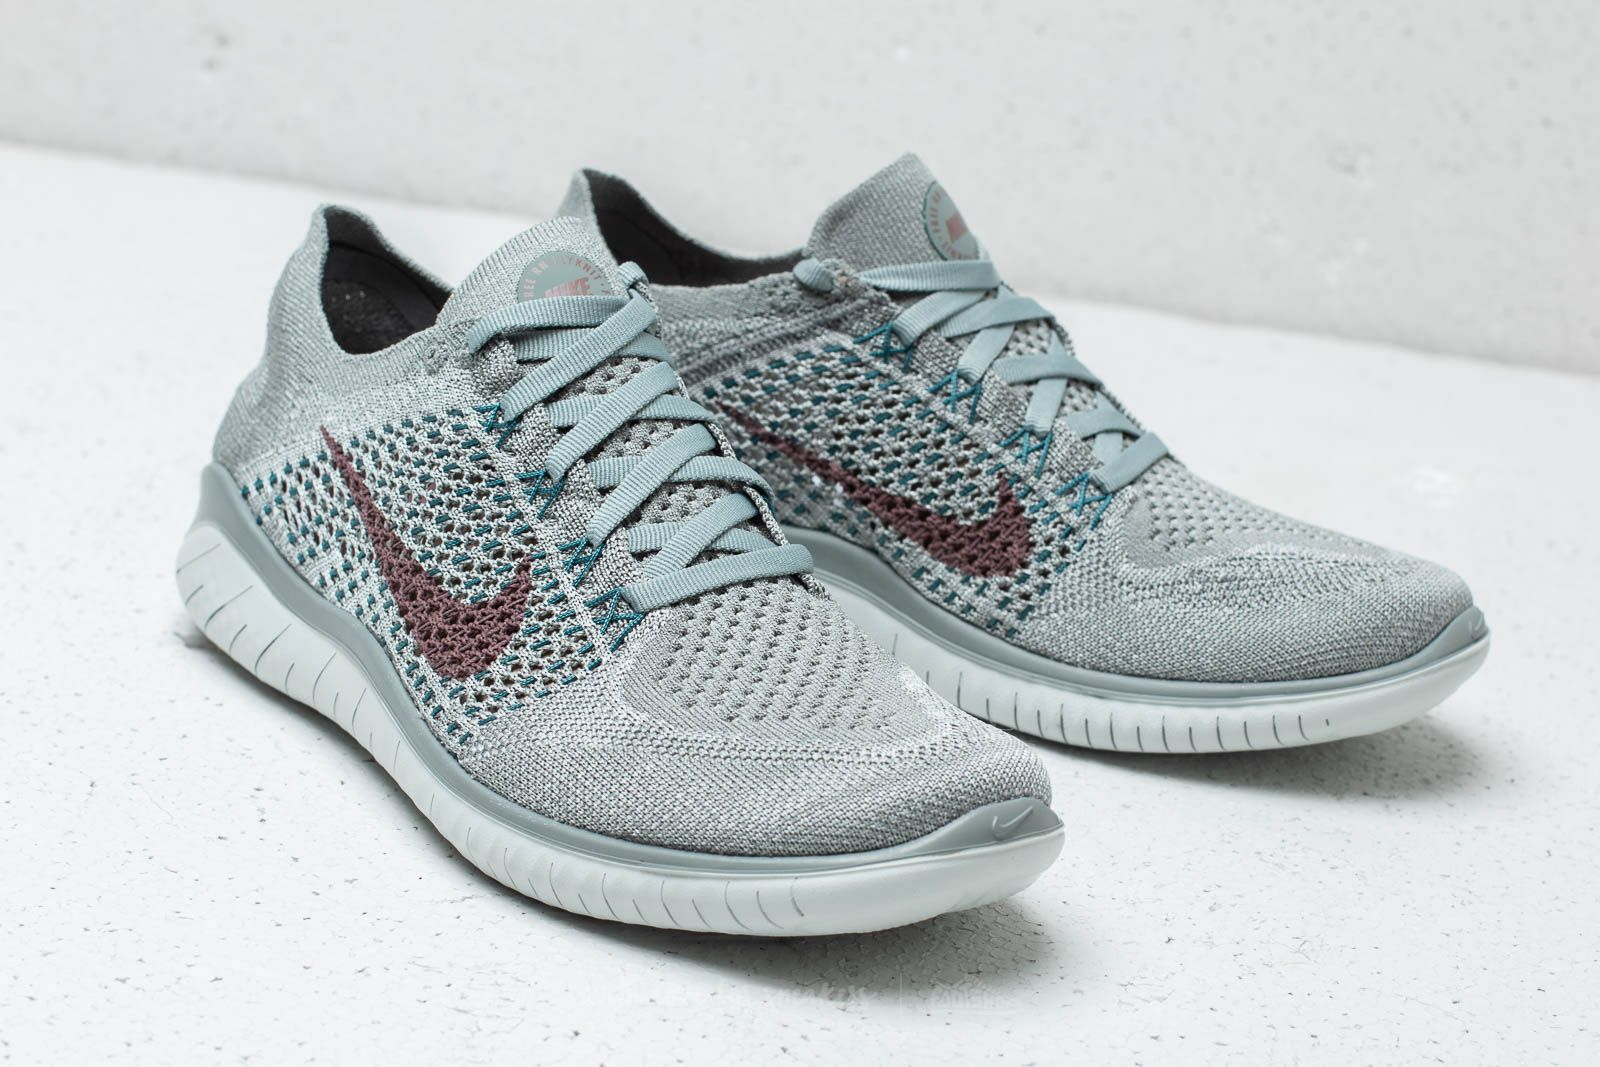 Nike Free RN Flyknit 2018 Wmns Mica green  Smokey Mauve at a great price 92 2a8d188f09